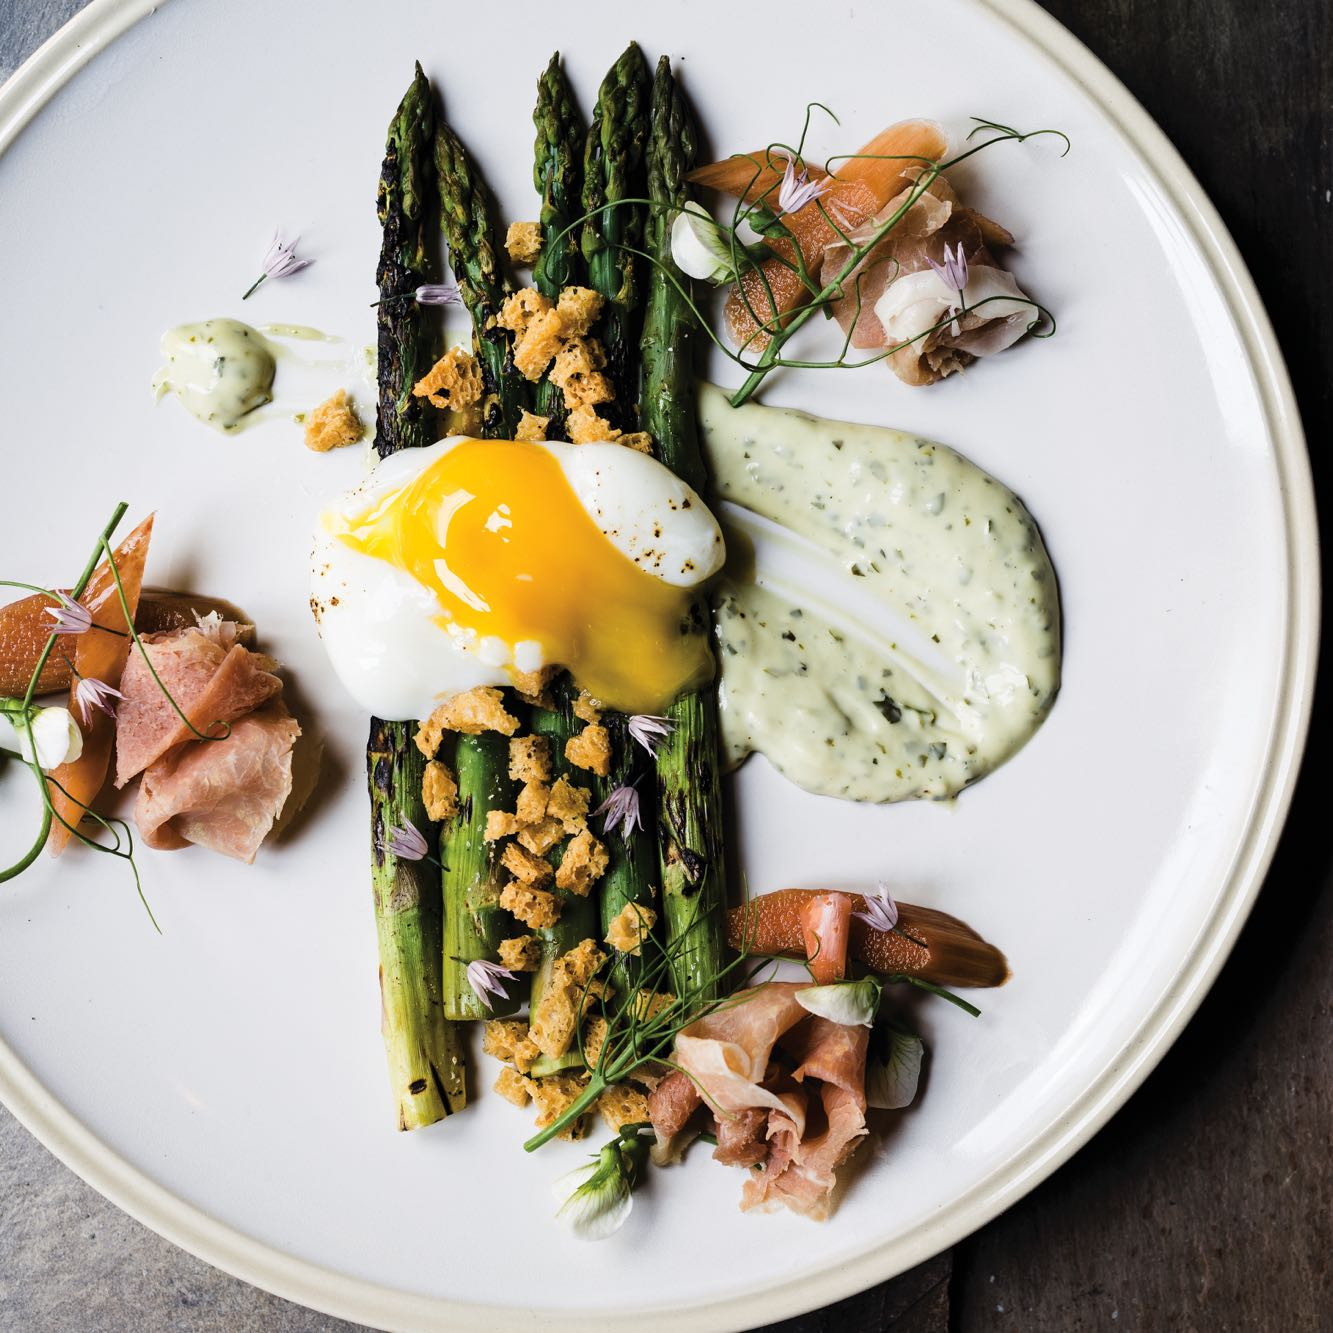 Roasted Asparagus with Green Goddess Dressing and Pickled Rhubarb